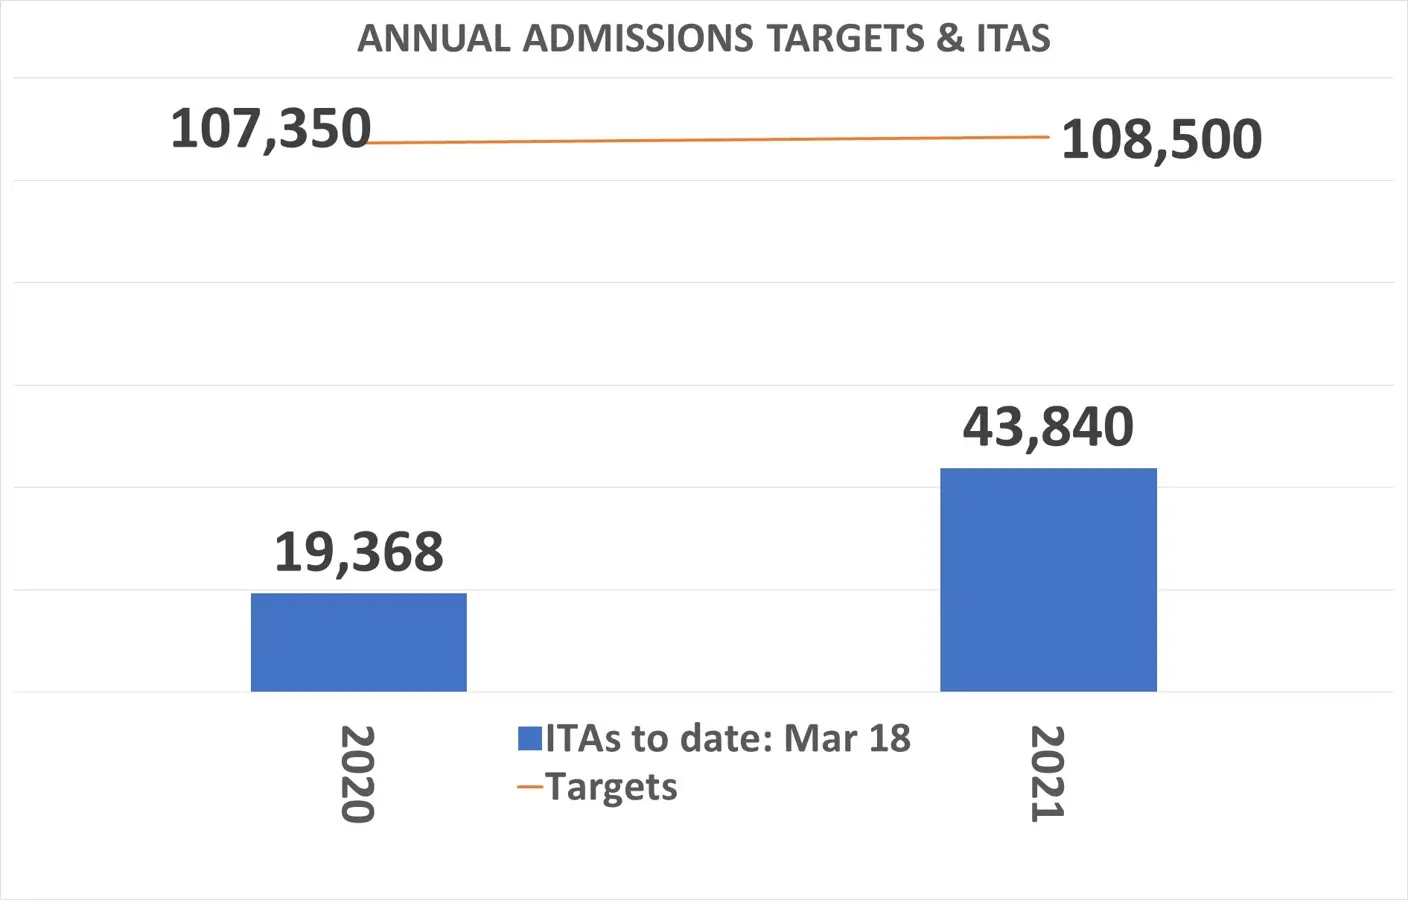 Annual-admission-targets-and-its-issued-until-march-2021